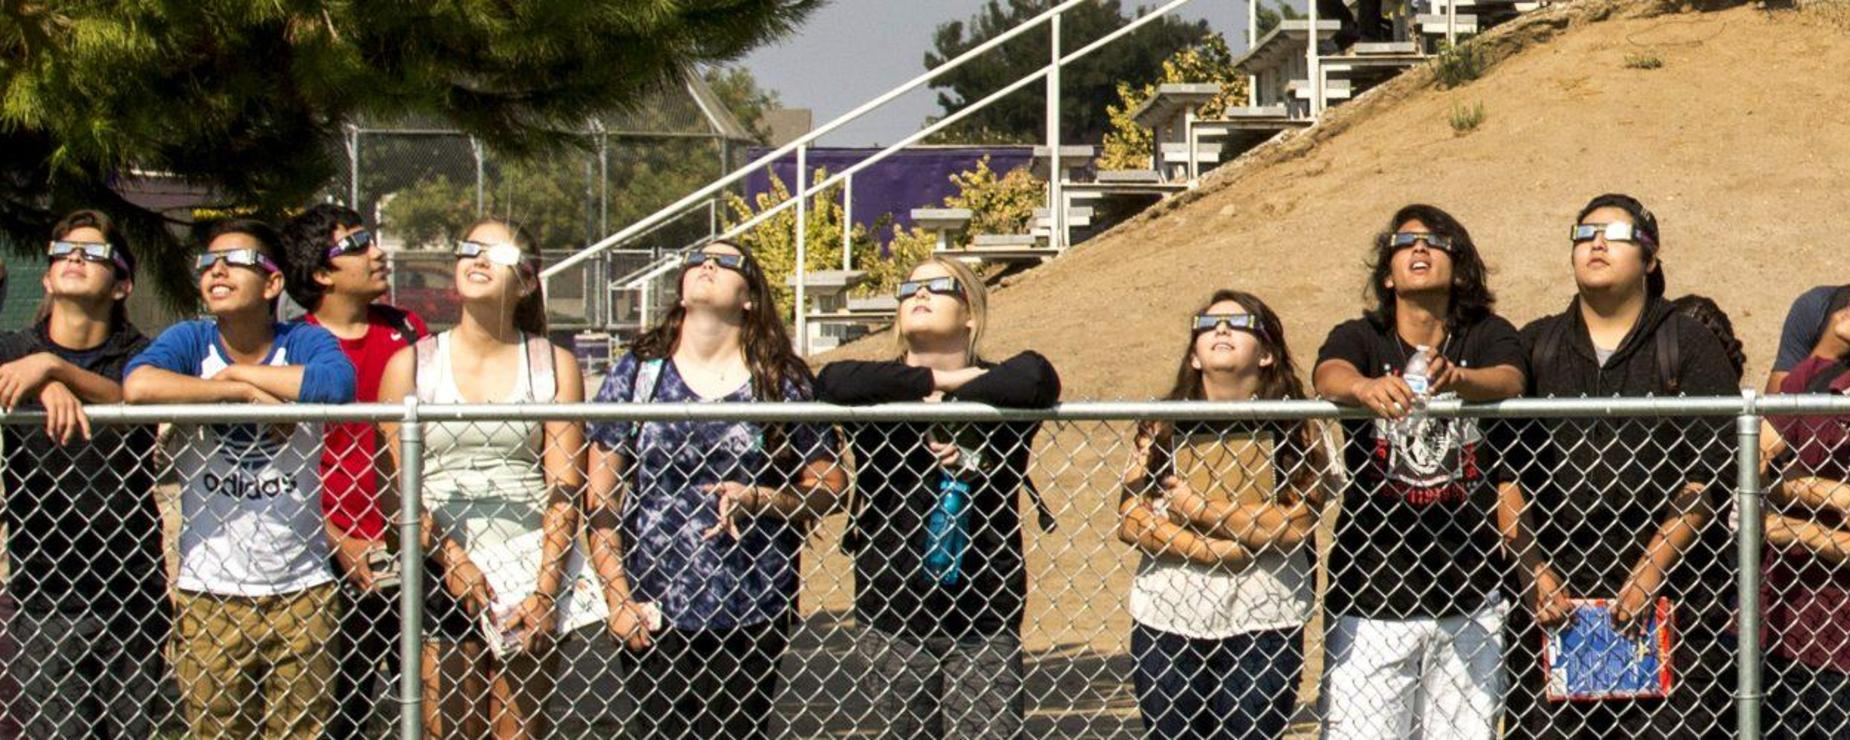 viewing eclipse